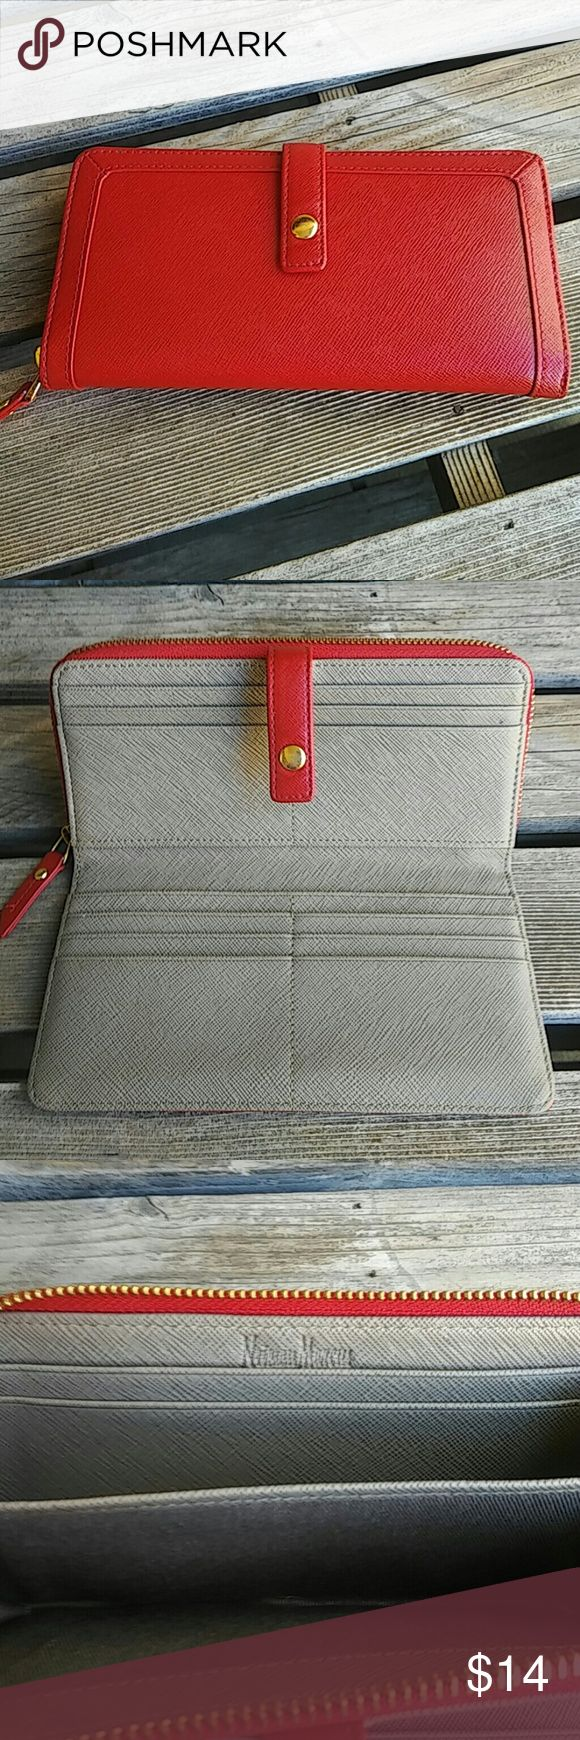 Neiman Marcus Red Wallet Gently carried.  Gold hardware. 12 credit card slots.  Purchased new from Neiman Marcus.  One small pen for on inside.  I believe this is simulated leather.  However, stunning! Neiman Marcus Bags Wallets